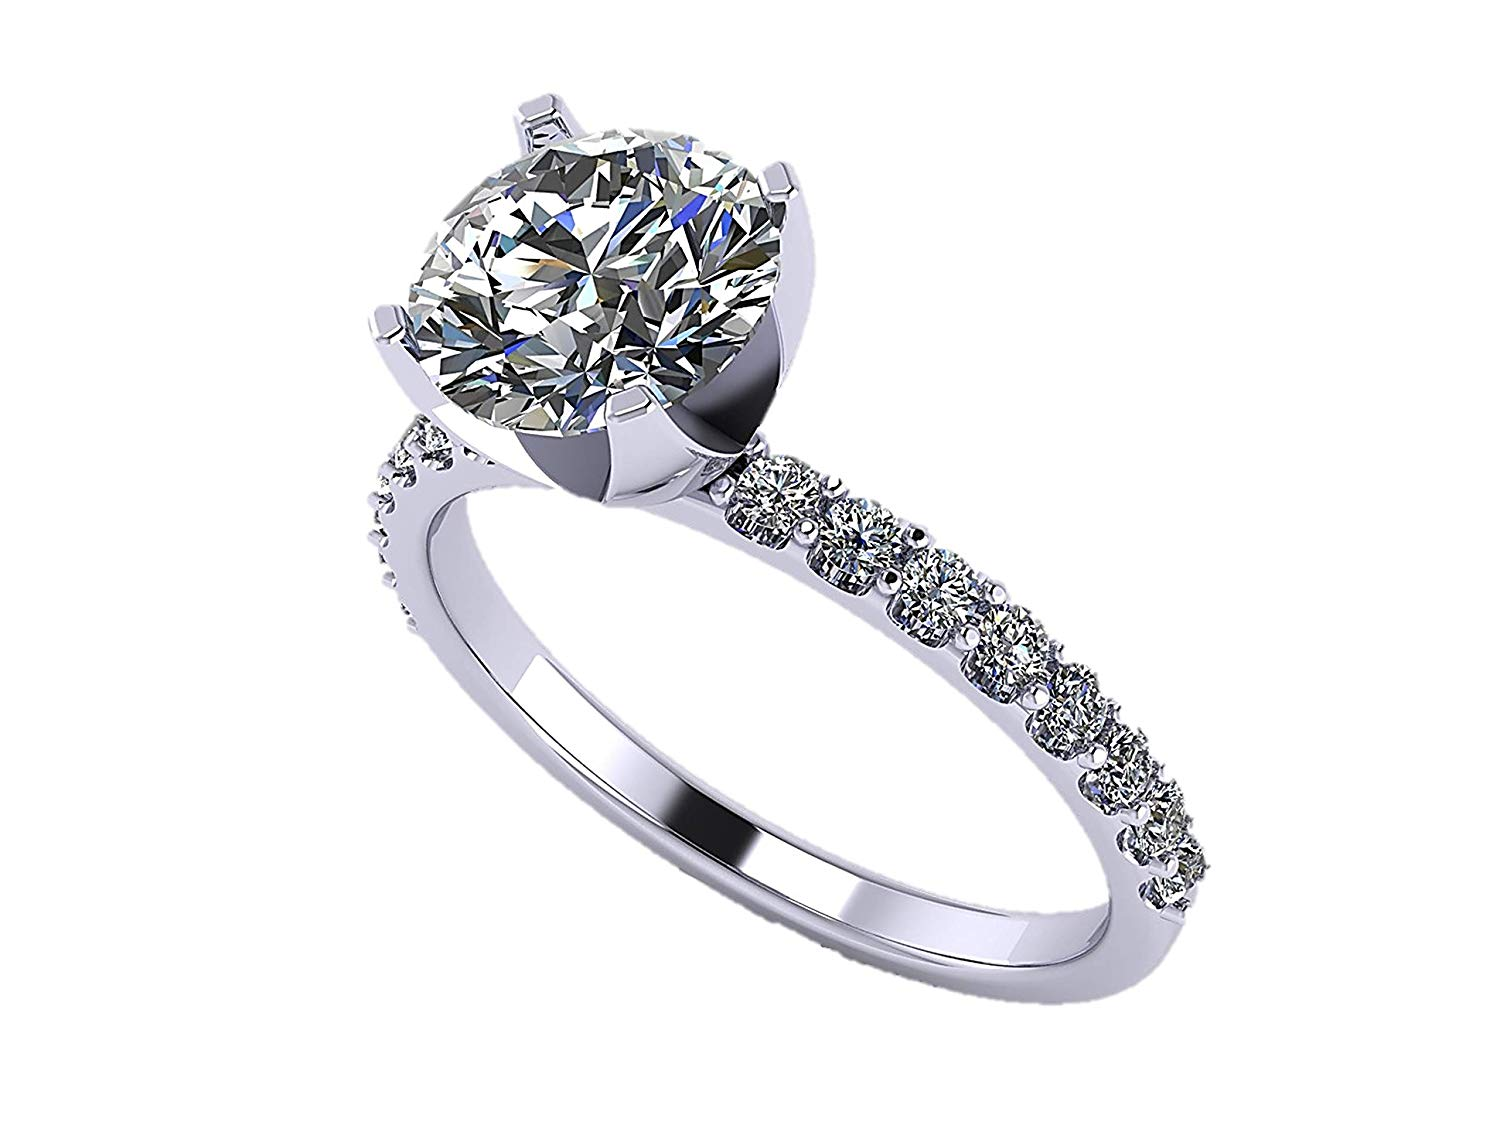 NANA 1.0-4.0ct Swarovski Zirconia Round Brilliant Cut Solitaire Engagement Ring Sterling Silver